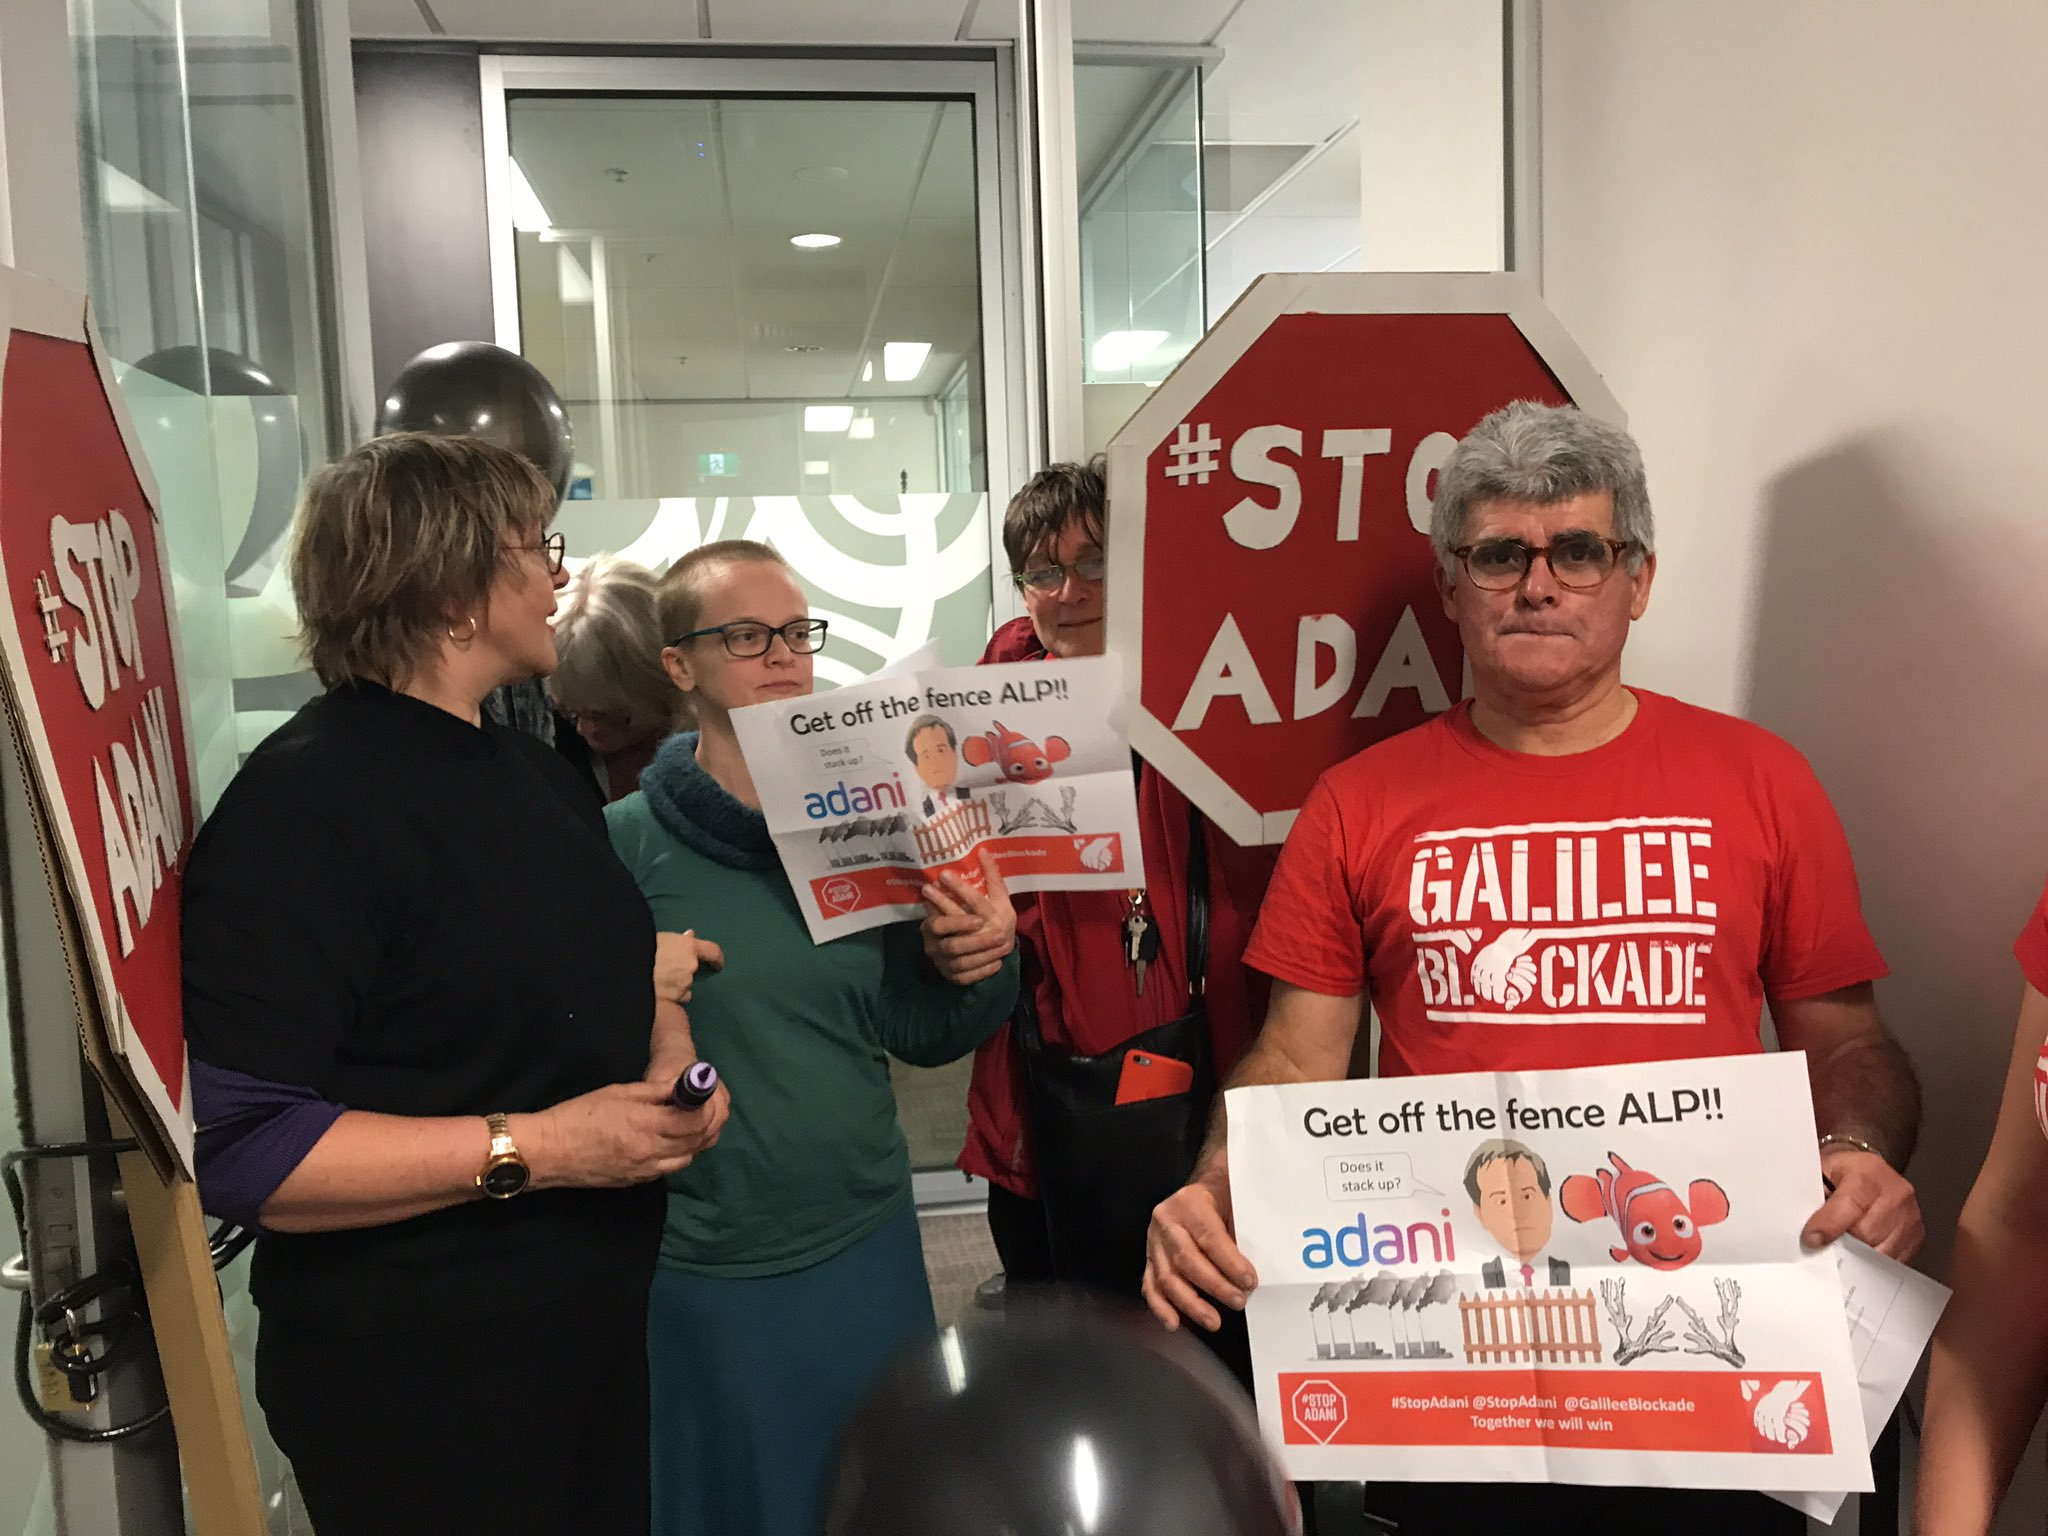 #StopAdani @billshortenmp we're in Bill's office asking labour to Get off the Fence! https://t.co/pzE9ZUhbOb